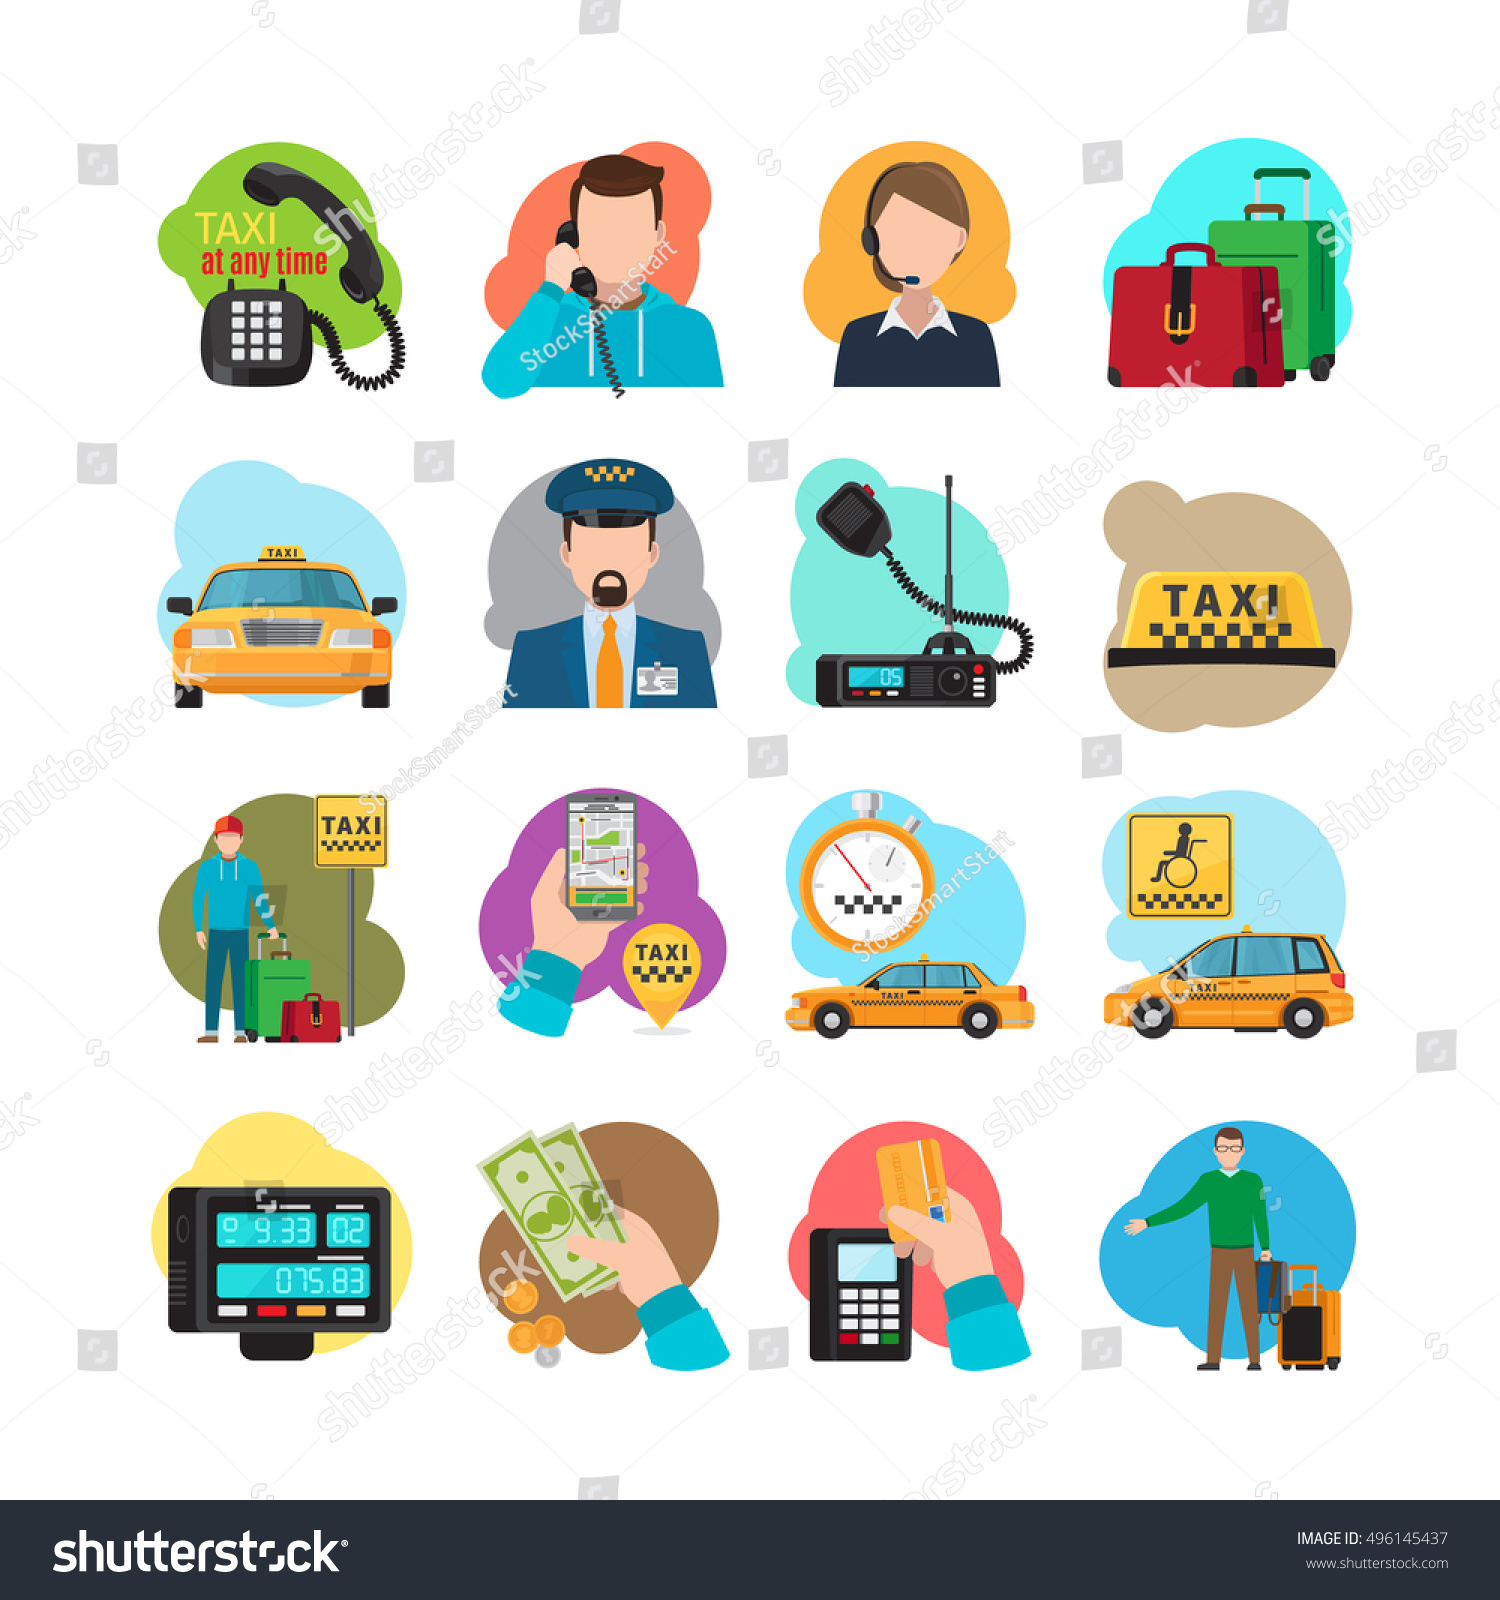 Taxi cartoon icons Taxi passenger and driver taxi orange sedan and yellow cab vector illustration